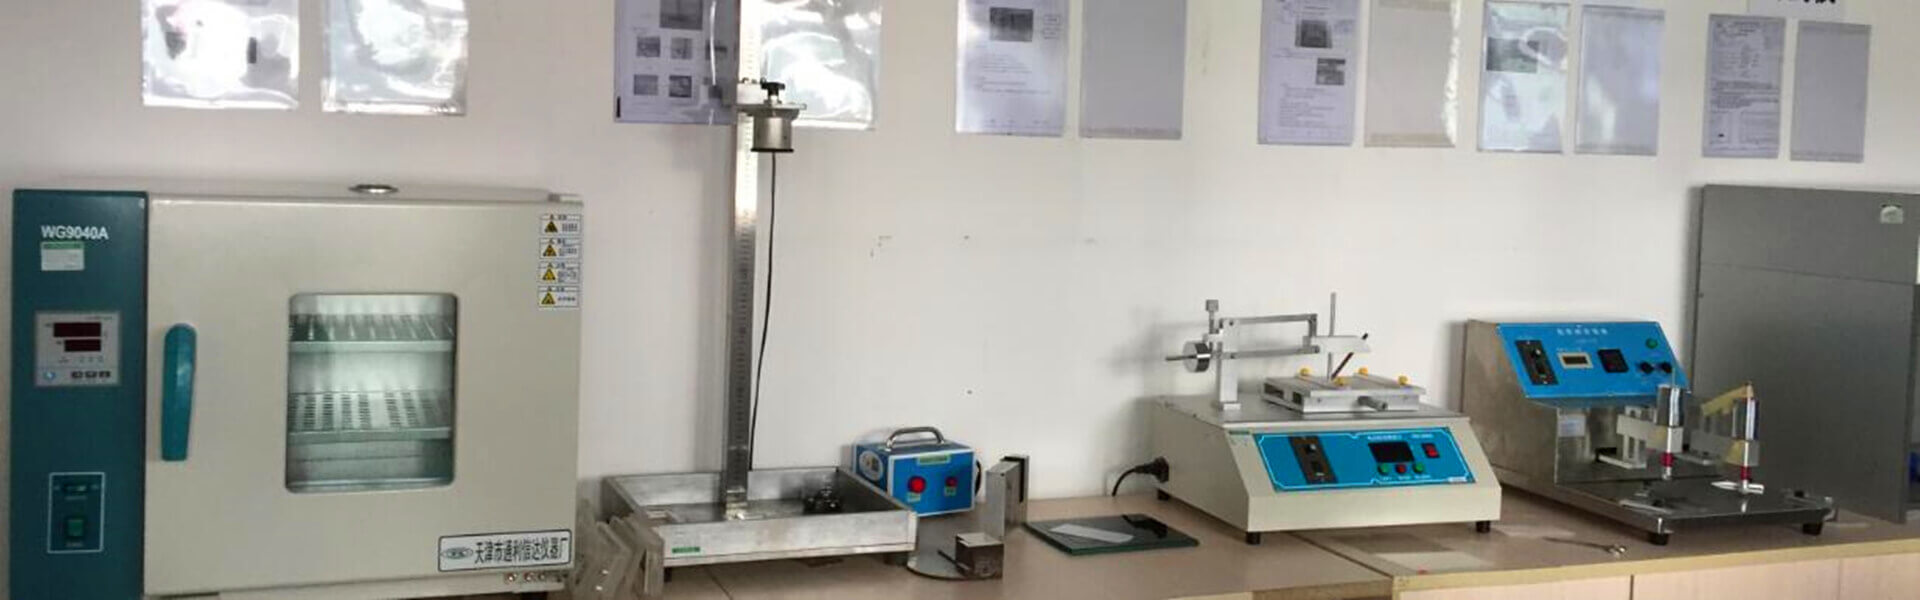 screen protector quality test machines